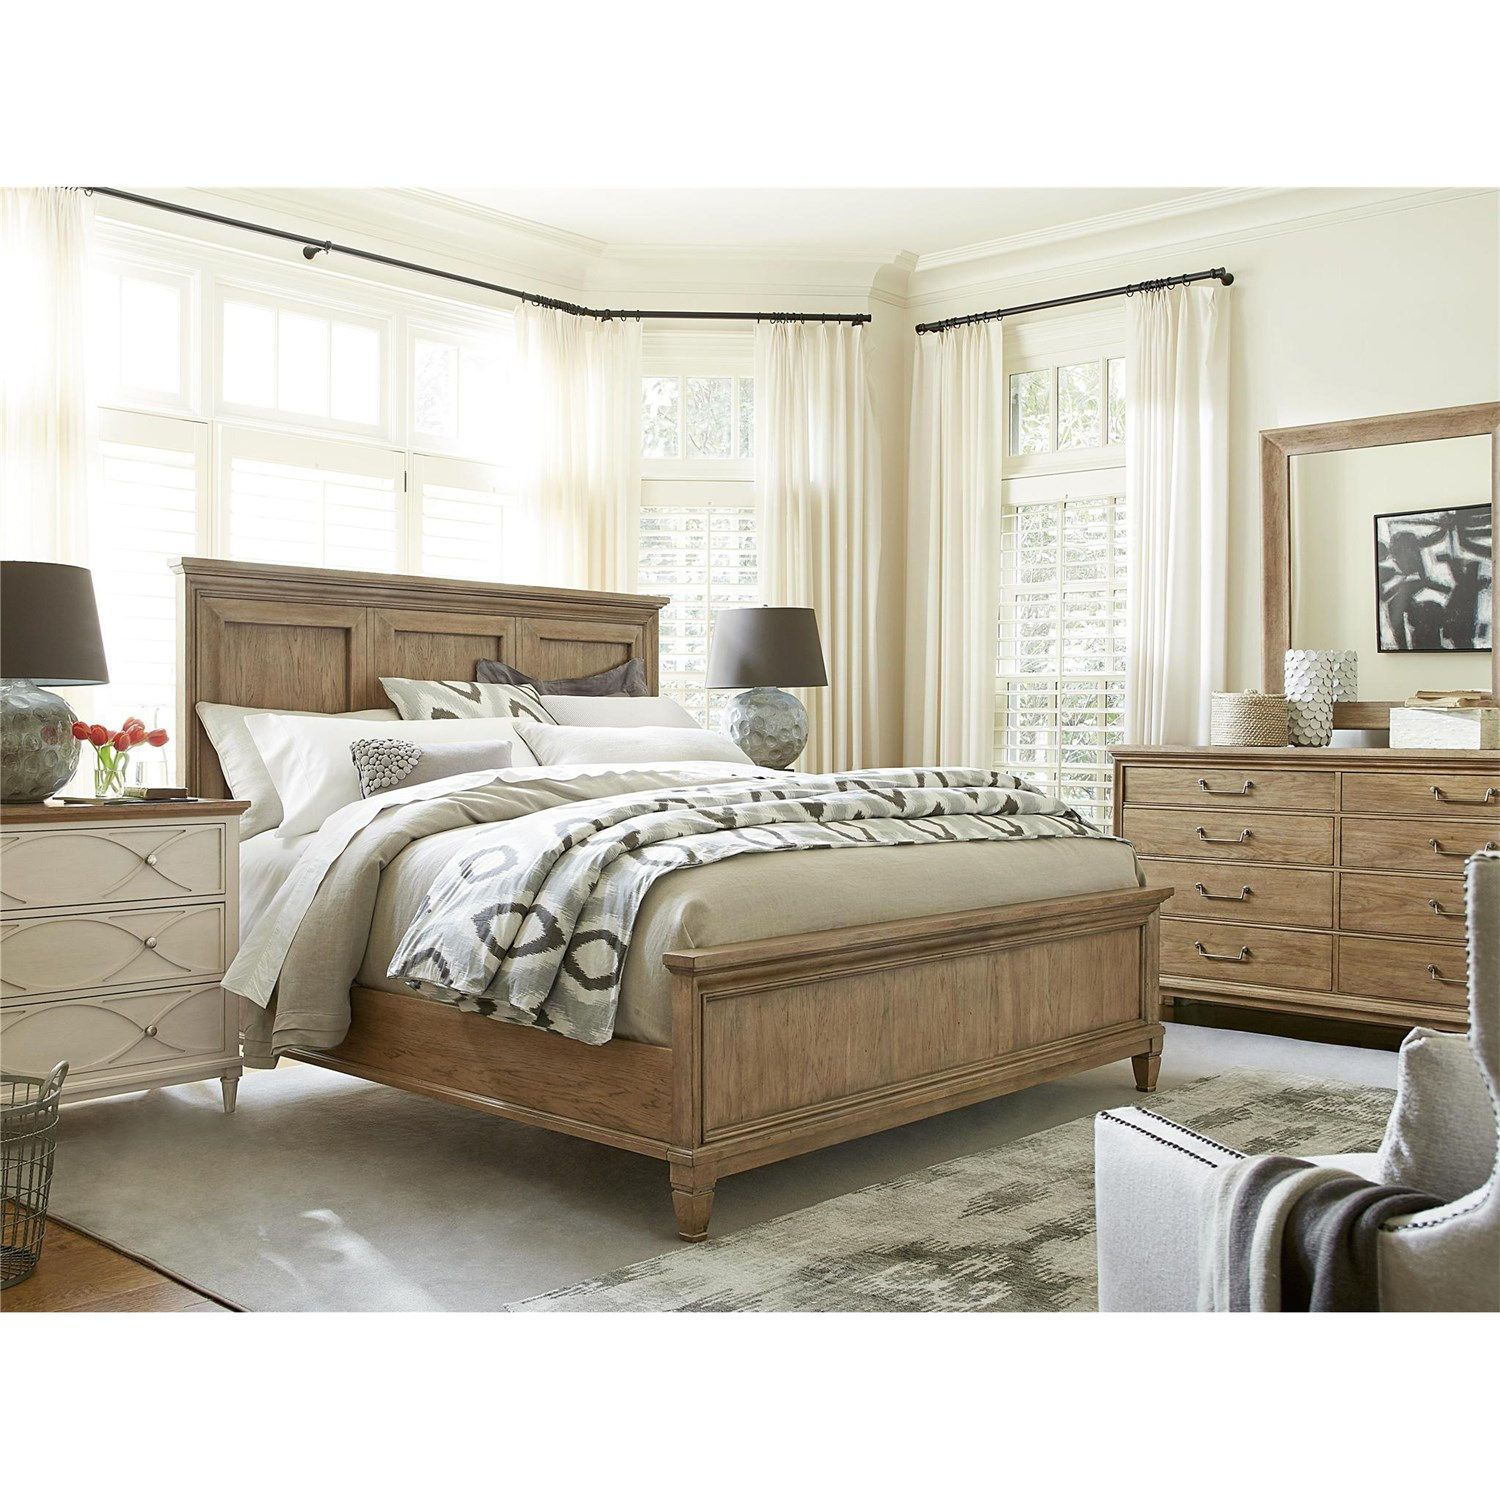 Universal furniture b moderne muse king bed in bisque